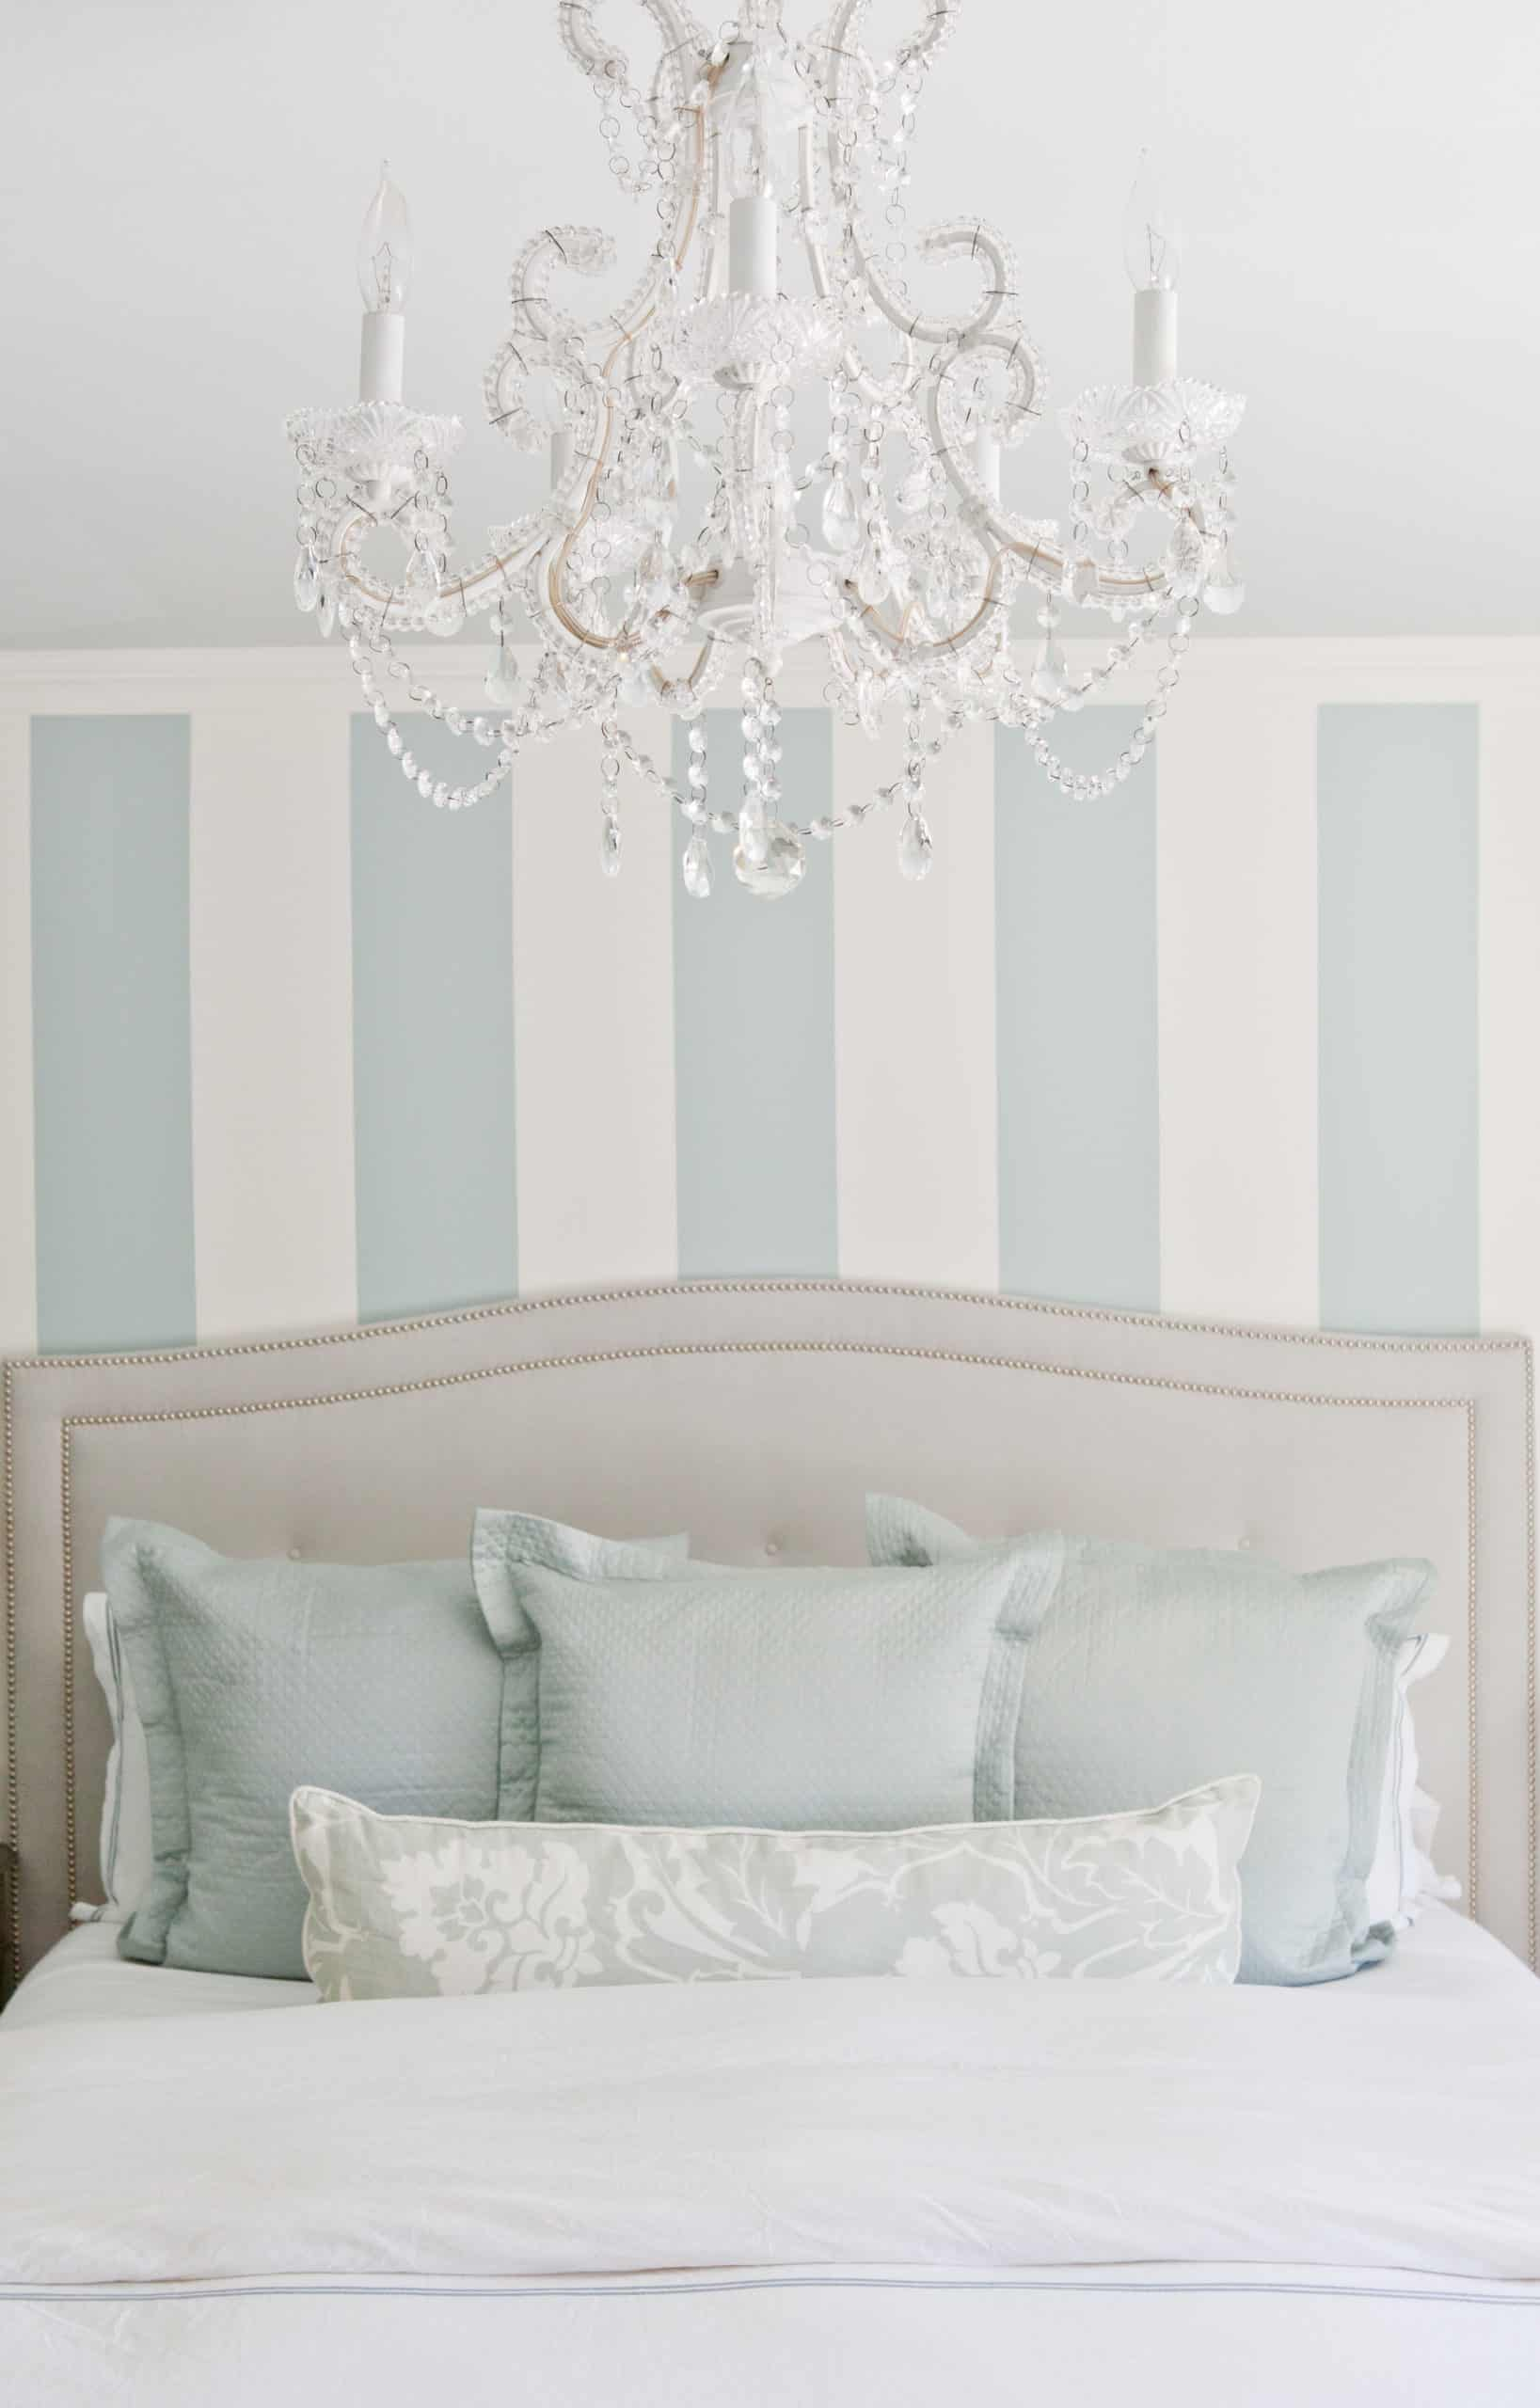 White and light blue wall inside a bedroom